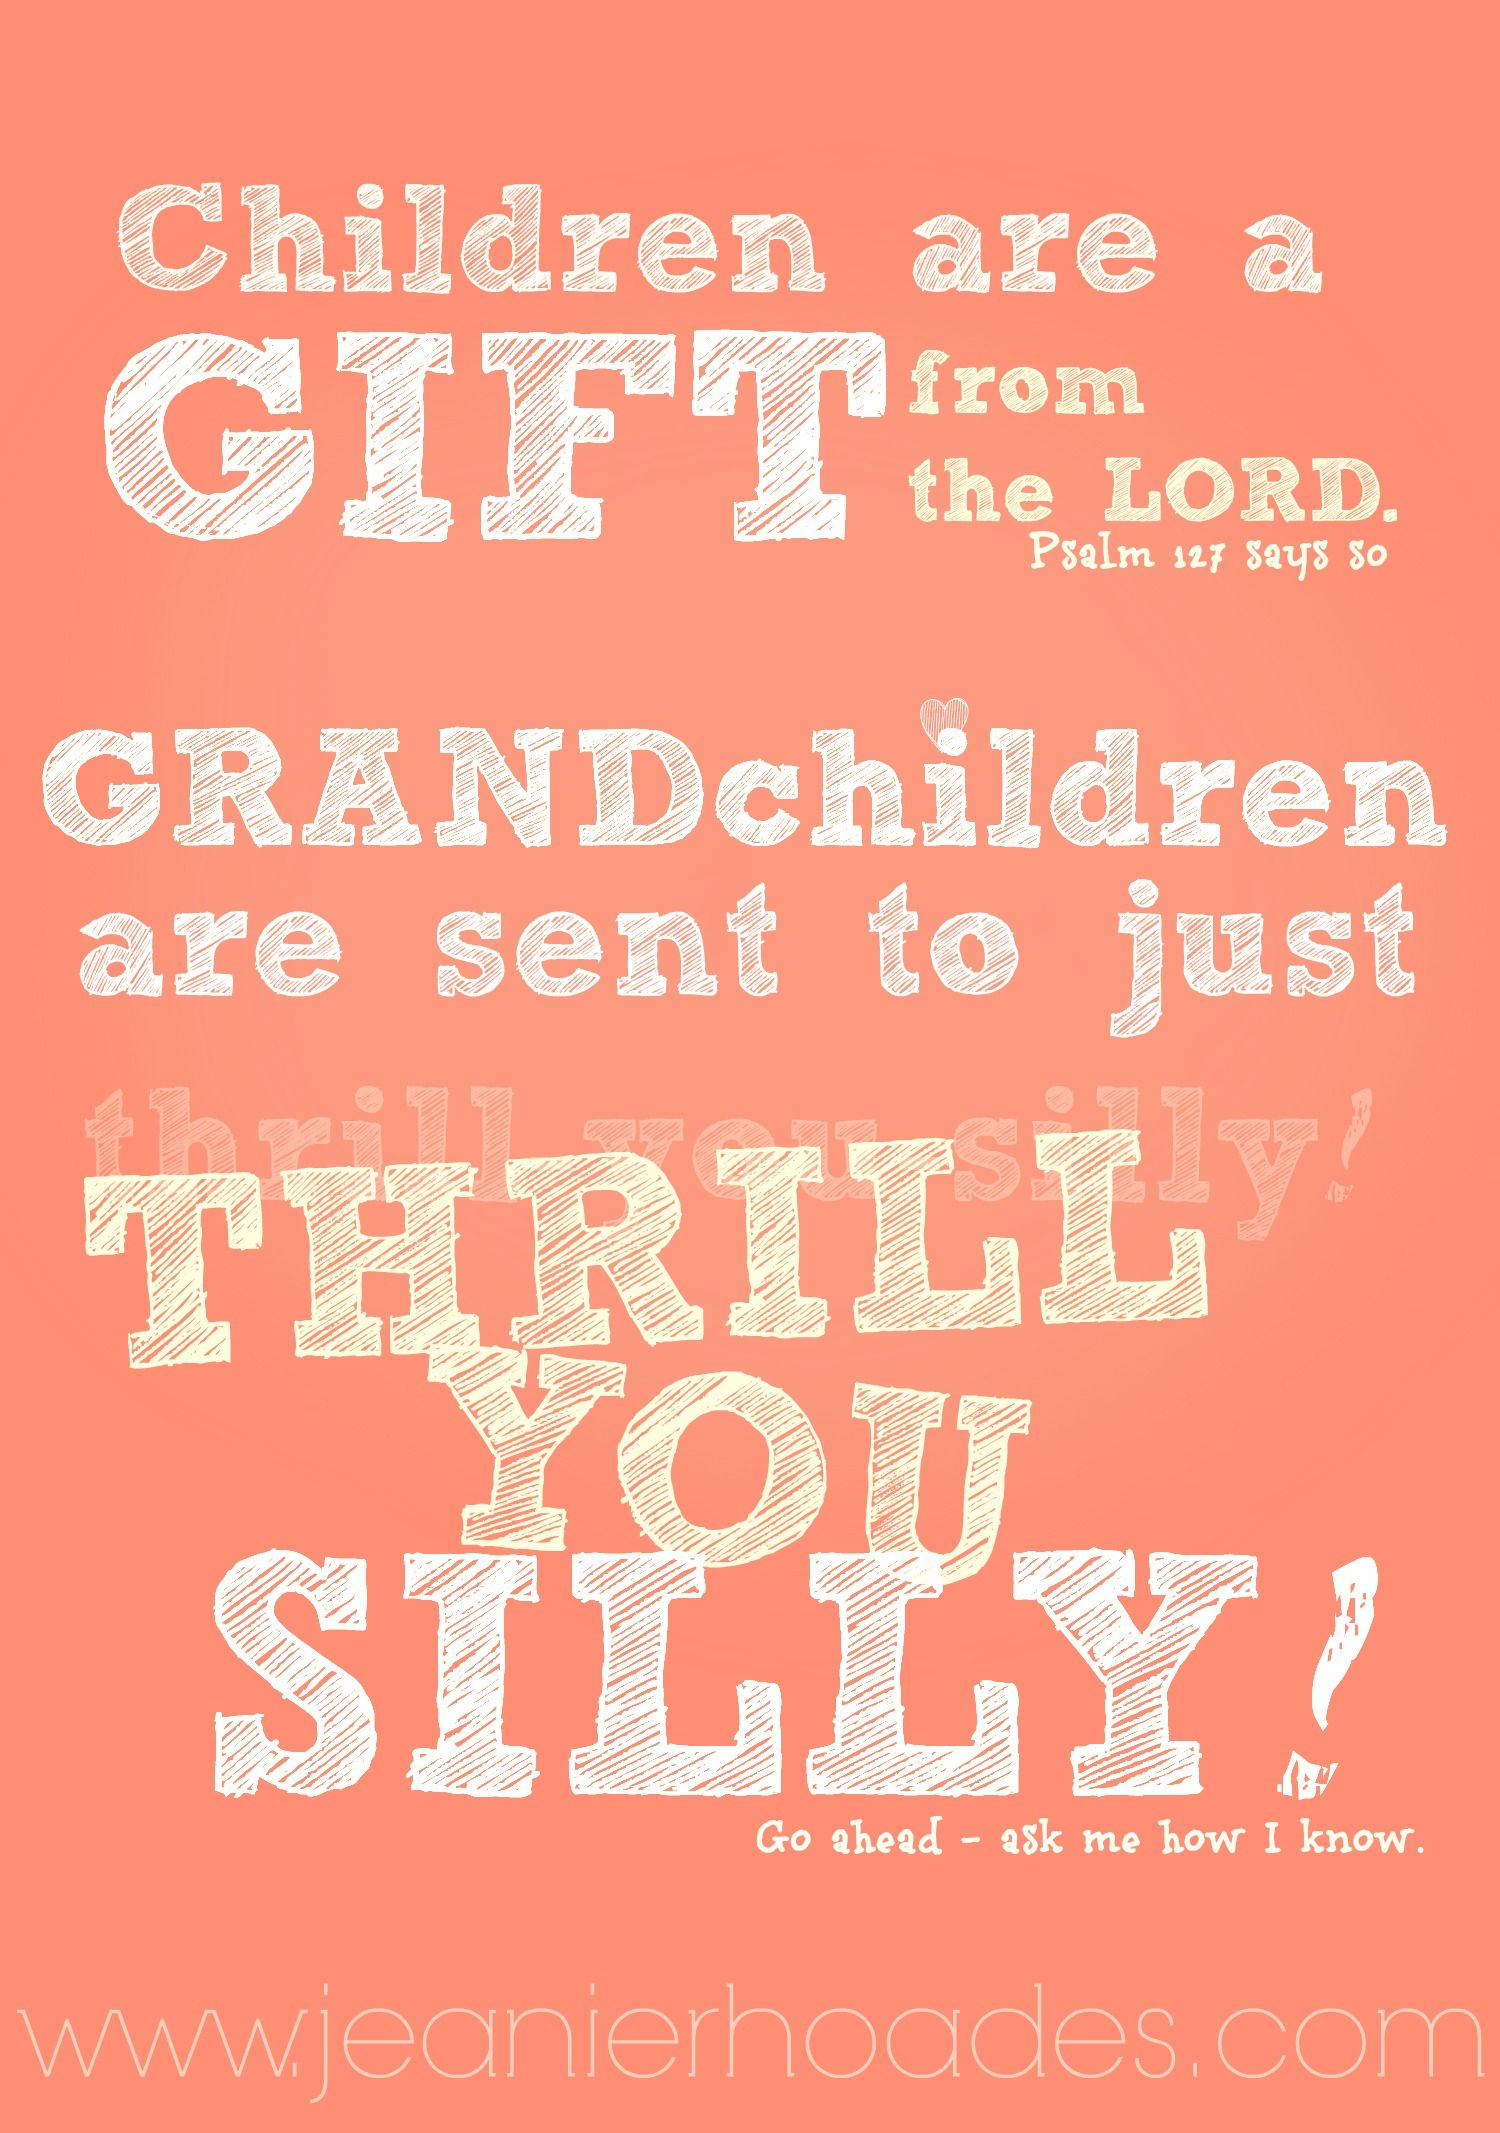 I Love My Granddaughter Quotes Granddaughter Quotes  Google Search  Nana's Gratitude Of Love